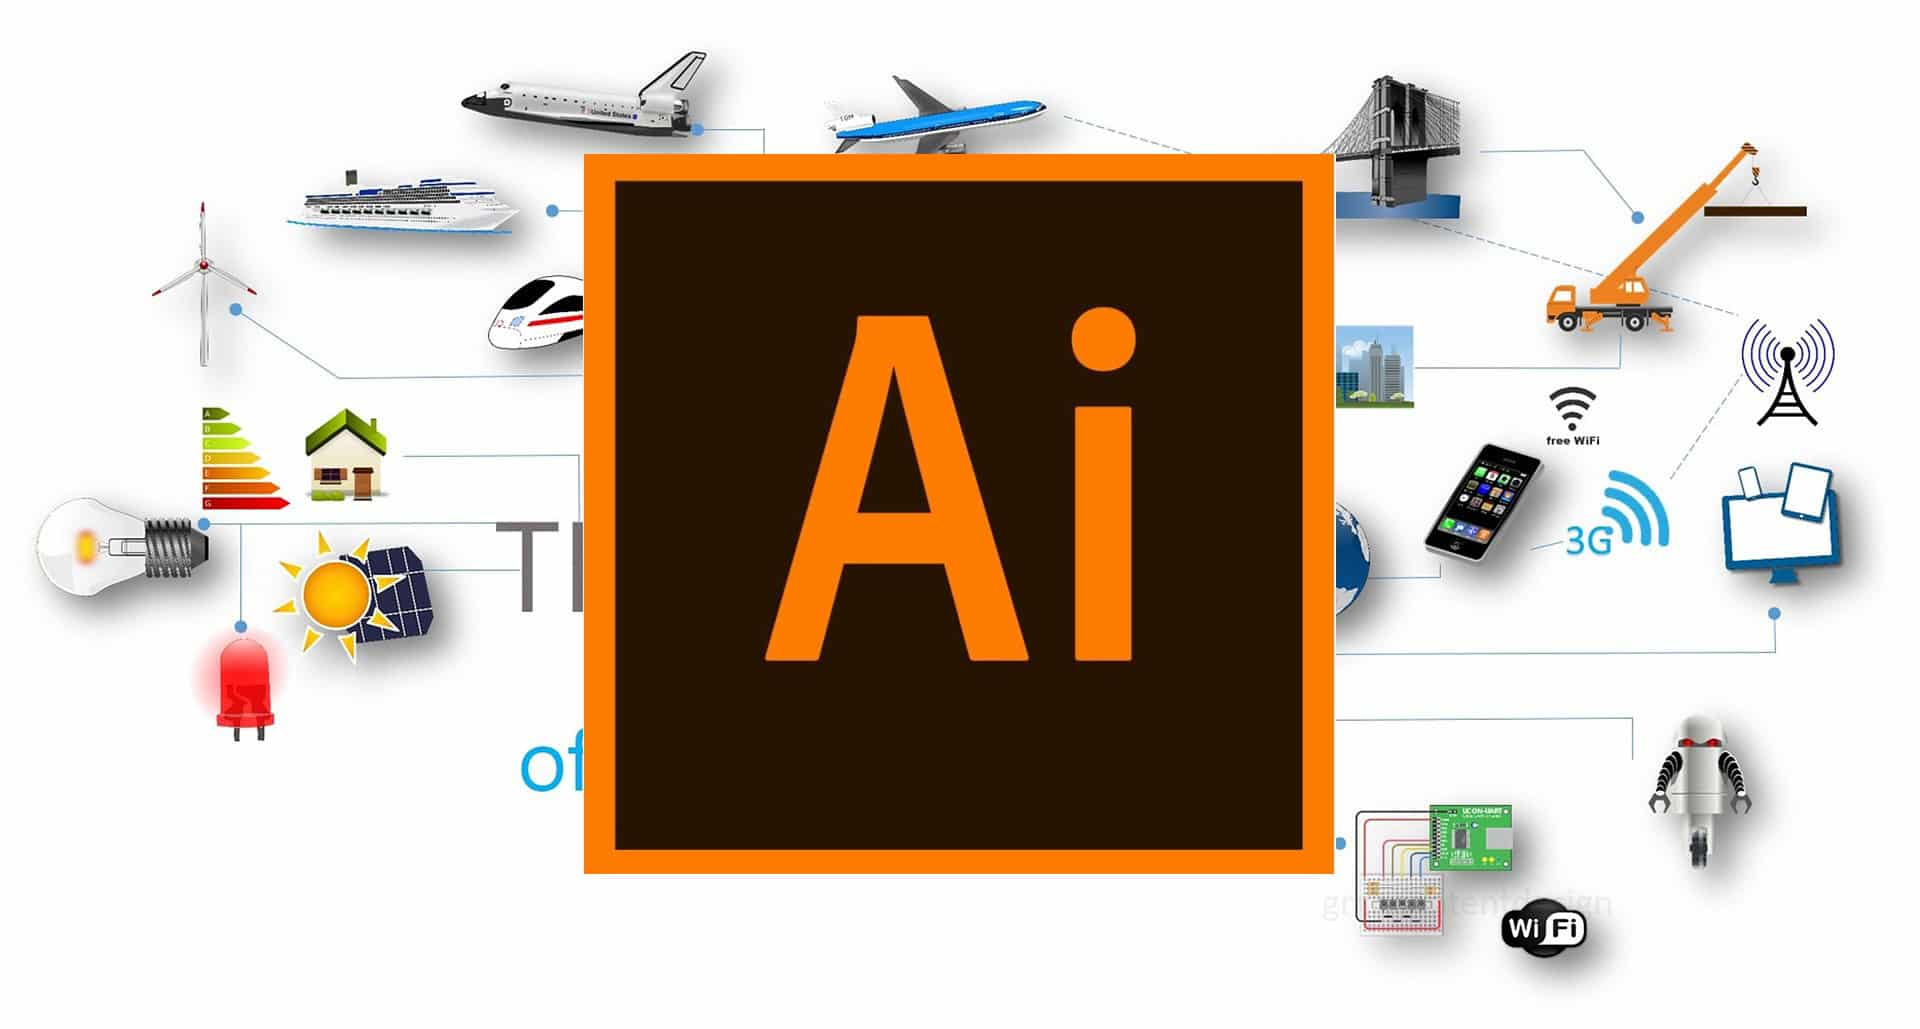 adobe illustrator cc - Adobe Illustrator cc il software ideale per la grafica vettoriale - Adobe Illustrator cc, il software ideale per la grafica vettoriale